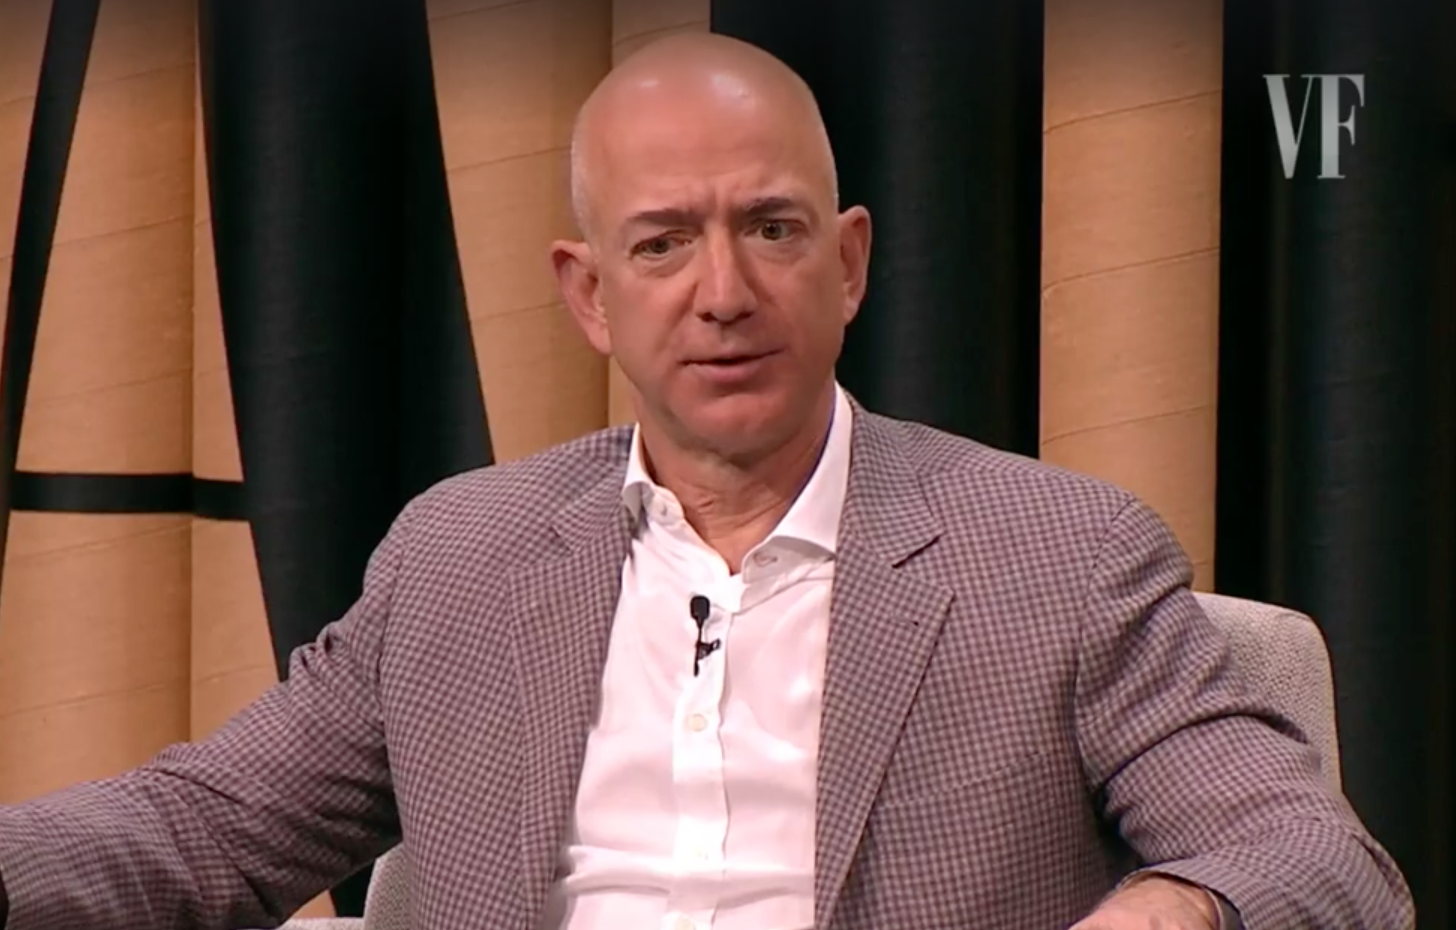 jeff bezos - photo #7